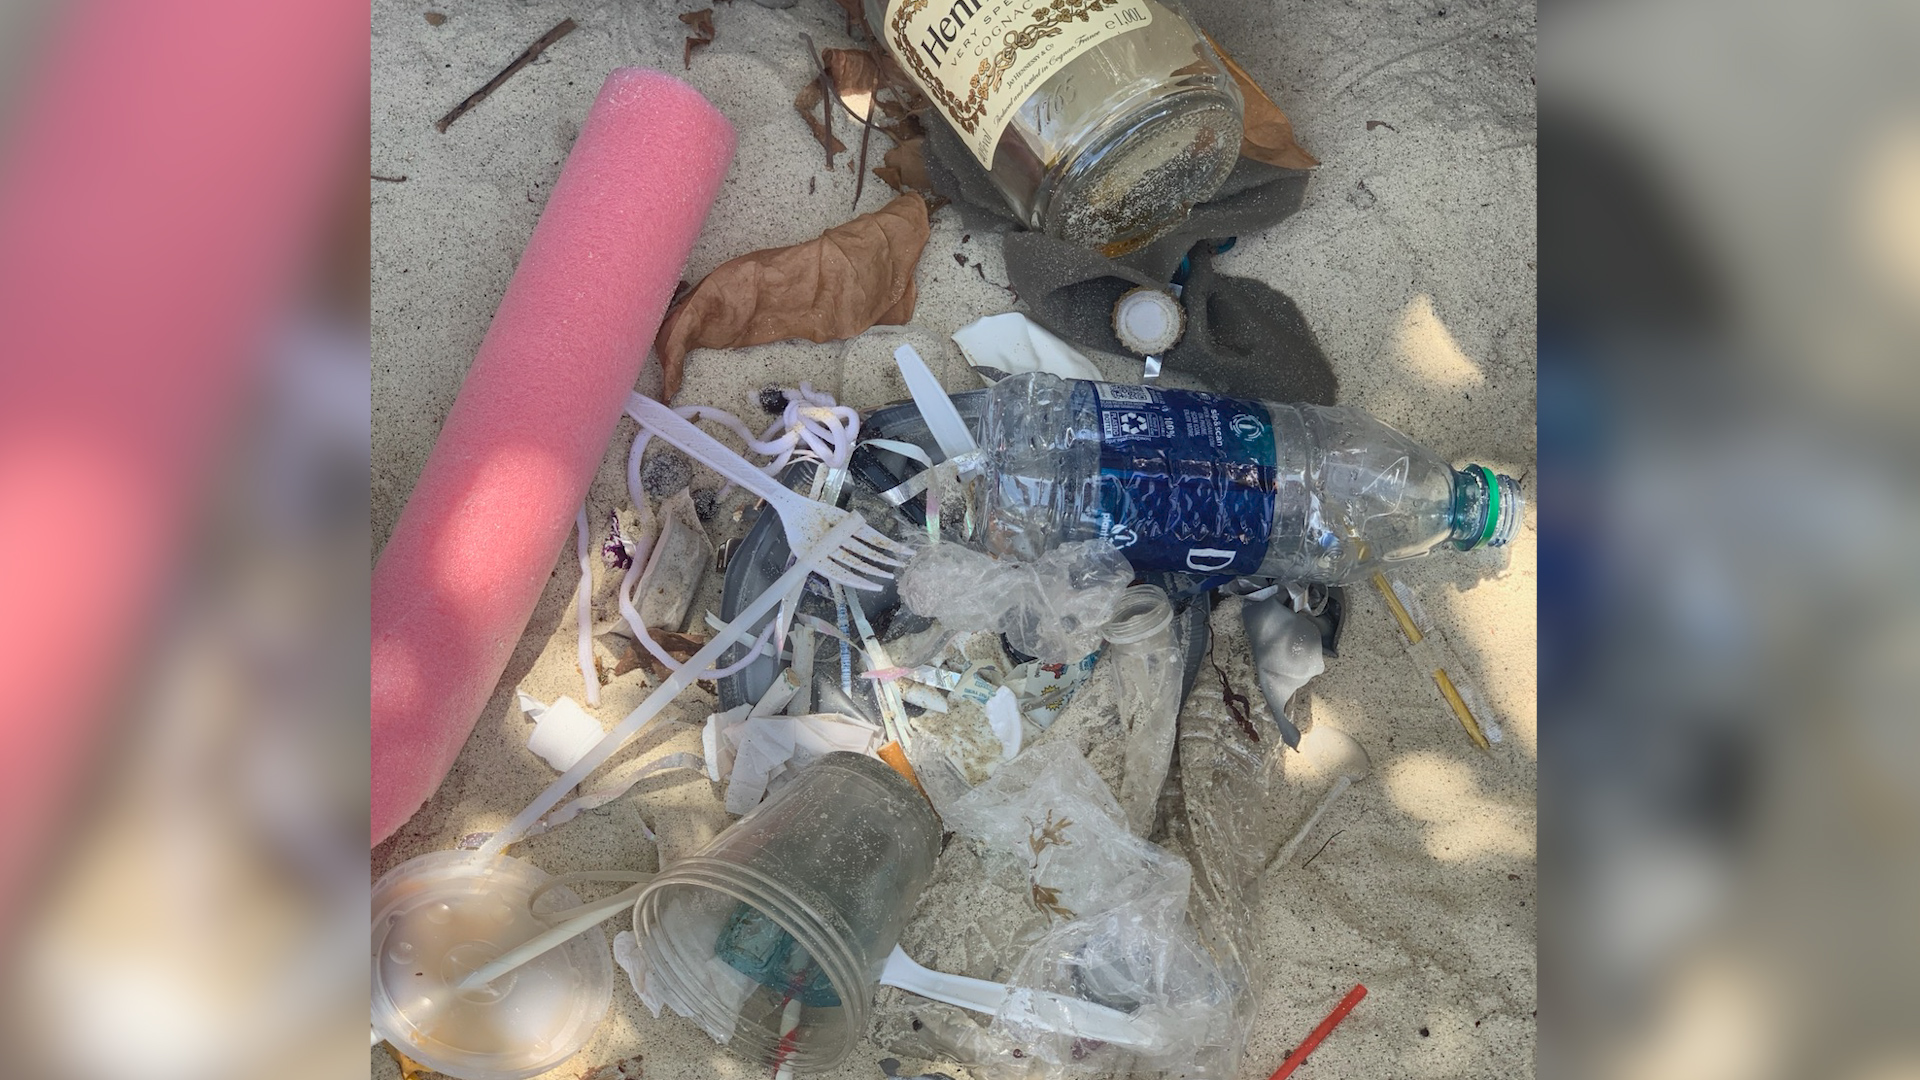 VI Residents Calling for Stop to Mandate of the Use of Disposable Products